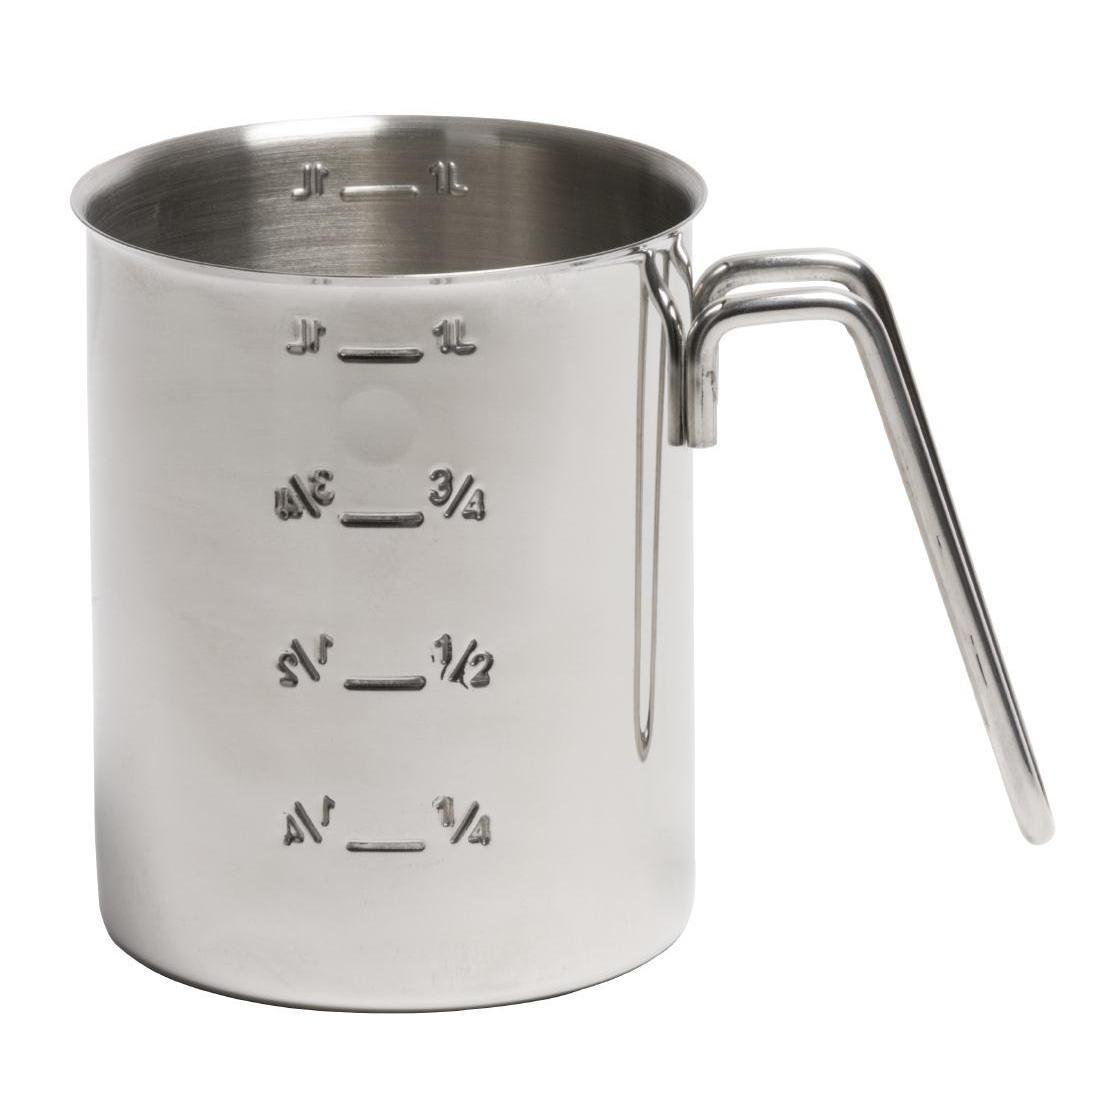 Graduated Stainless Steel Measuring Jug 1Ltr - Each - CC402